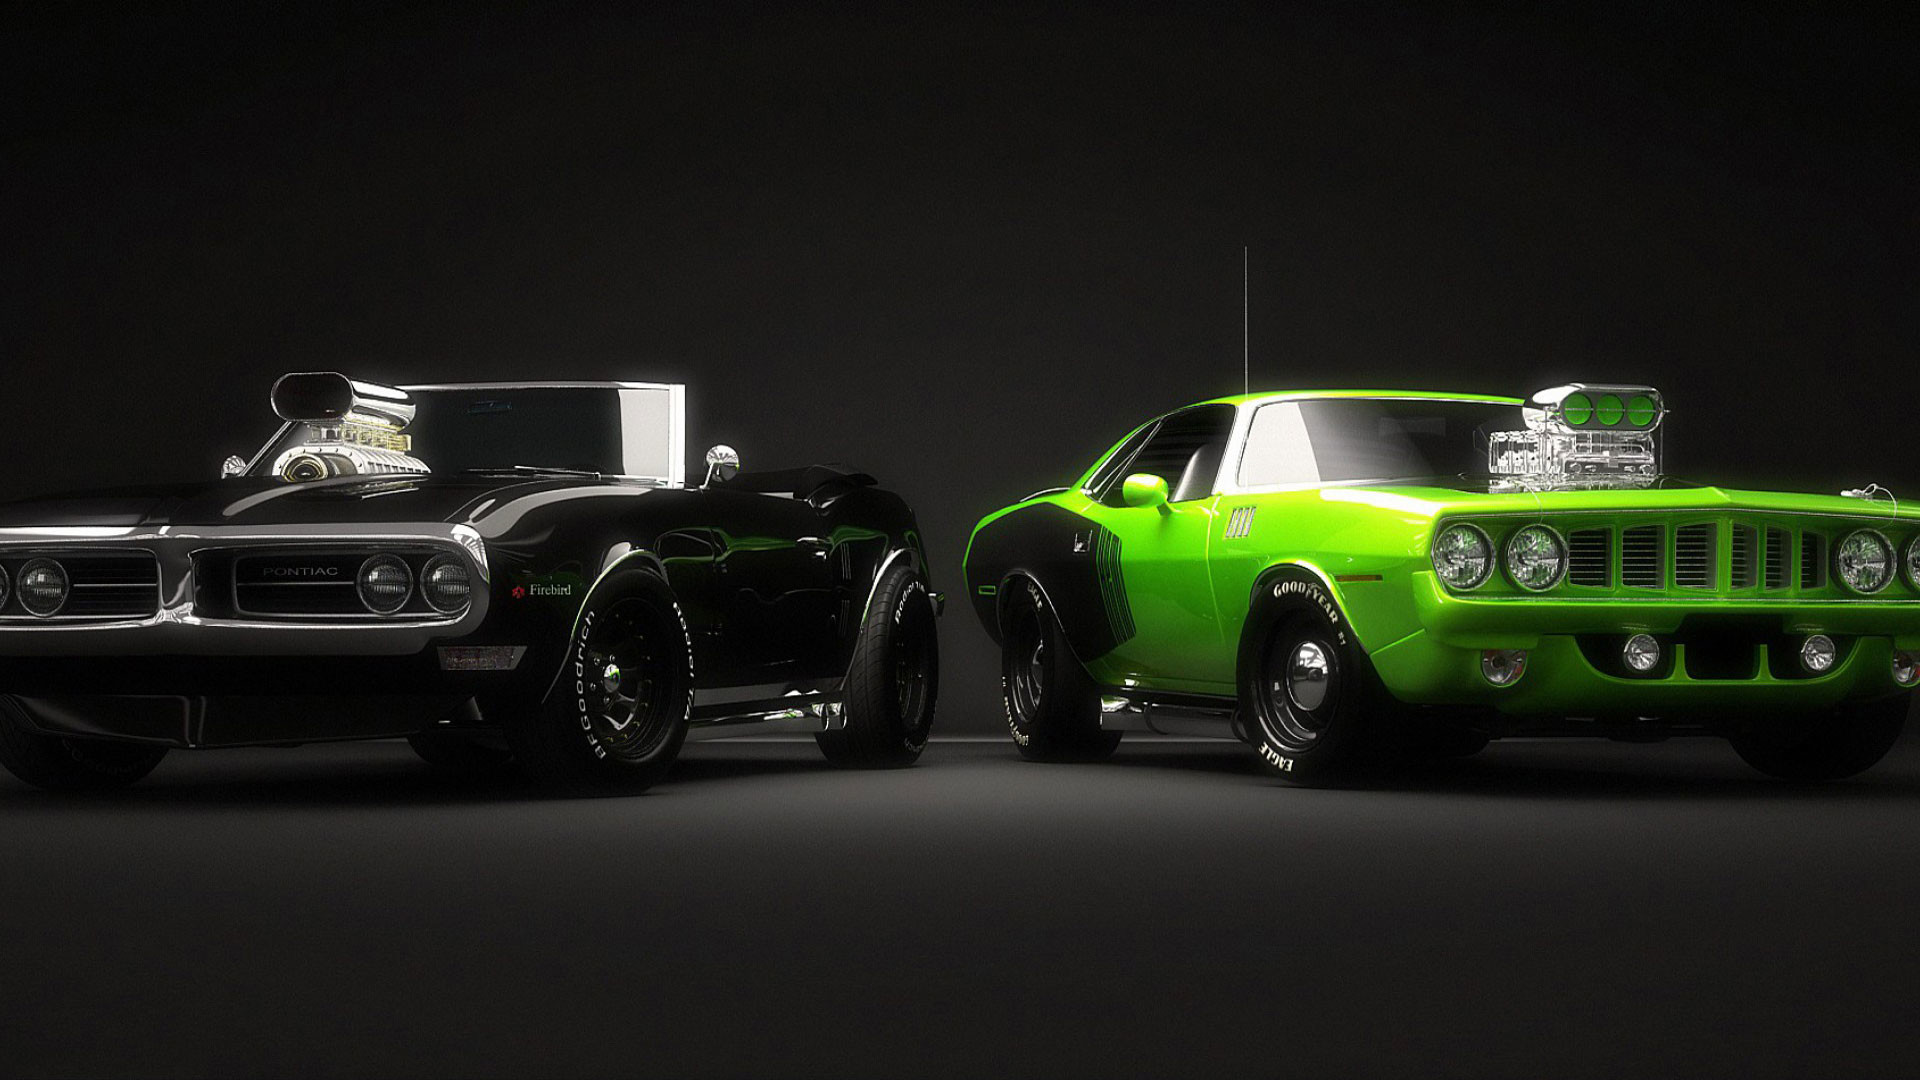 hd pics photos stunning old cars green and black attractive hd quality  desktop background wallpaper